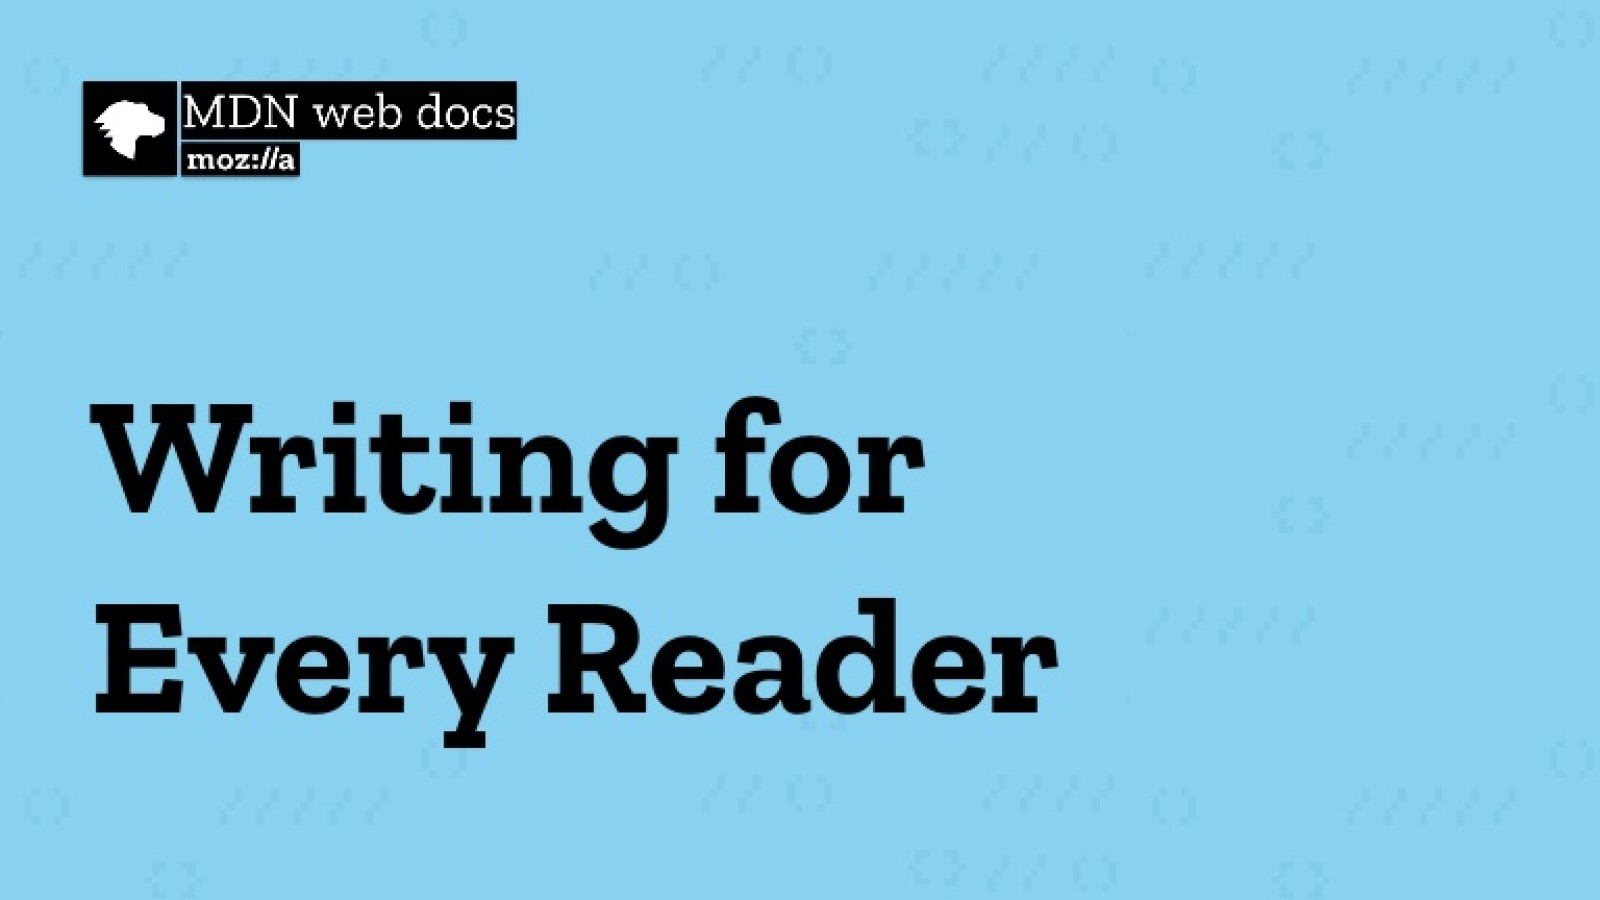 Writing for Every Reader